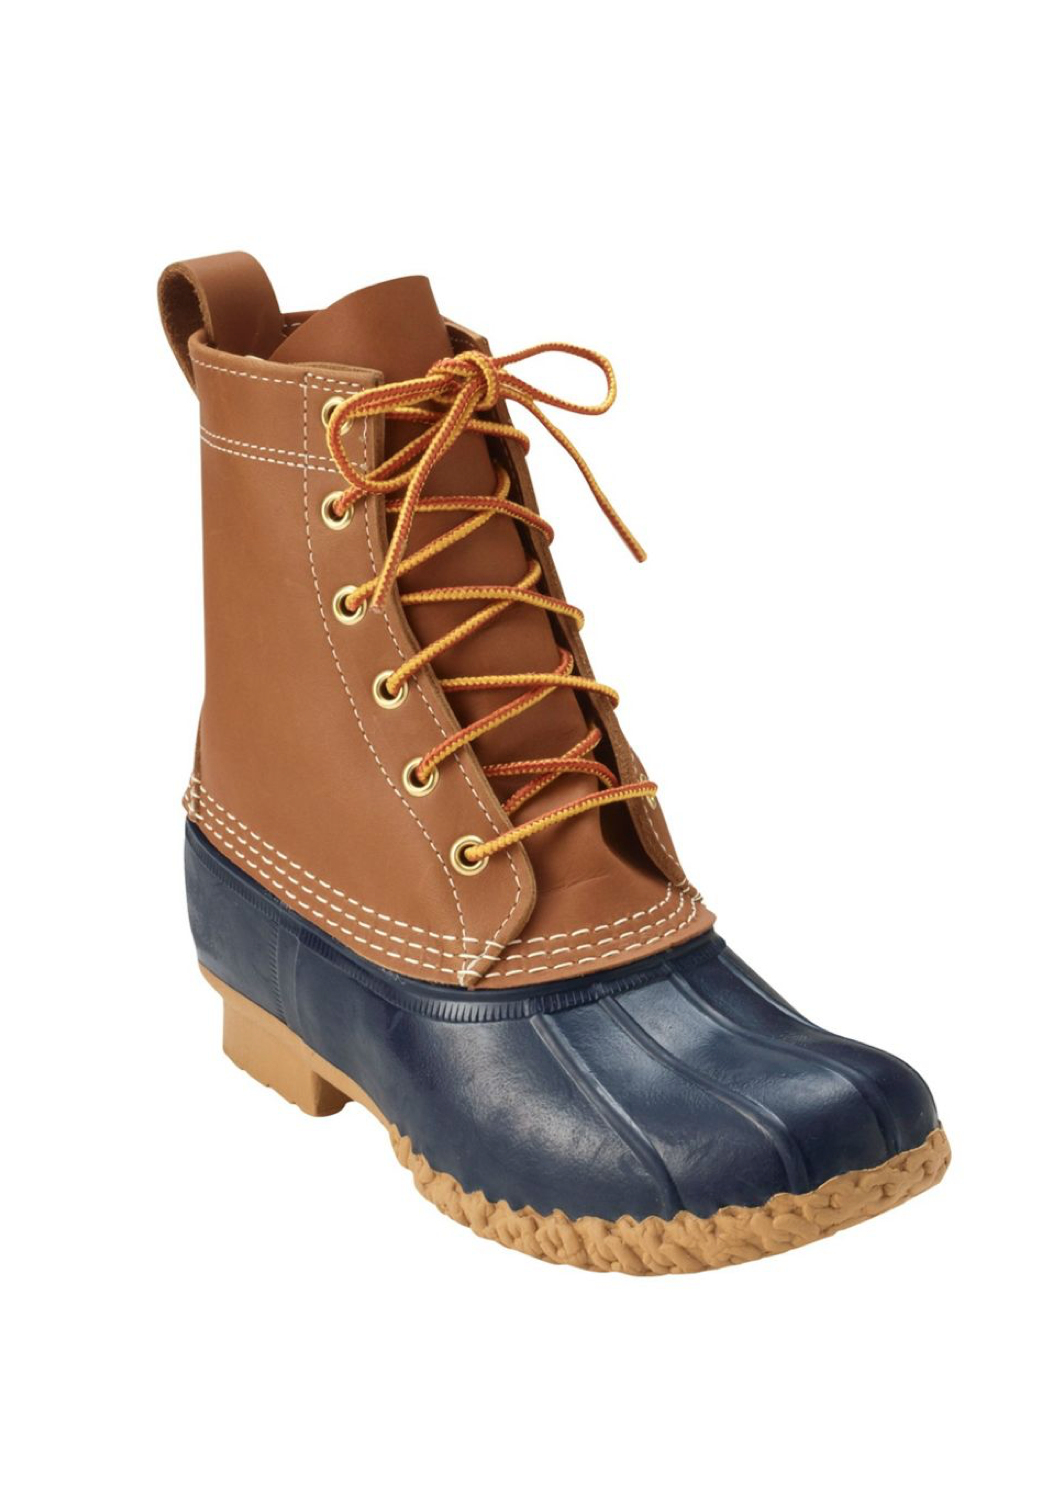 Leather Bean Boots